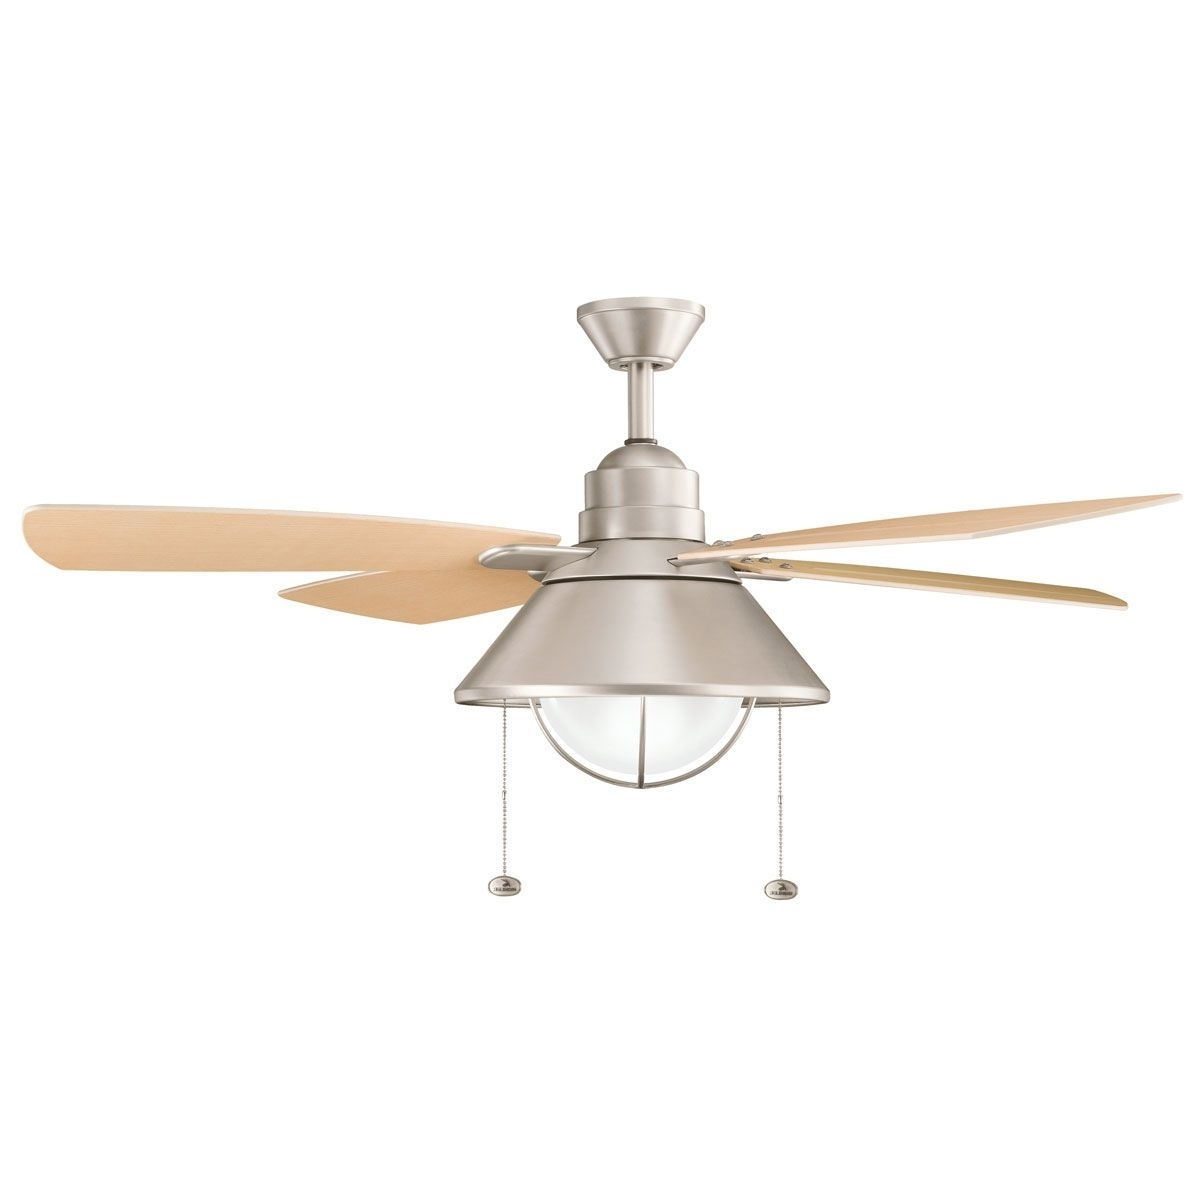 Nickel Outdoor Ceiling Fans Intended For Newest Kichler Fans Seaside Ceiling Fan In Brushed Nickel (Gallery 11 of 20)